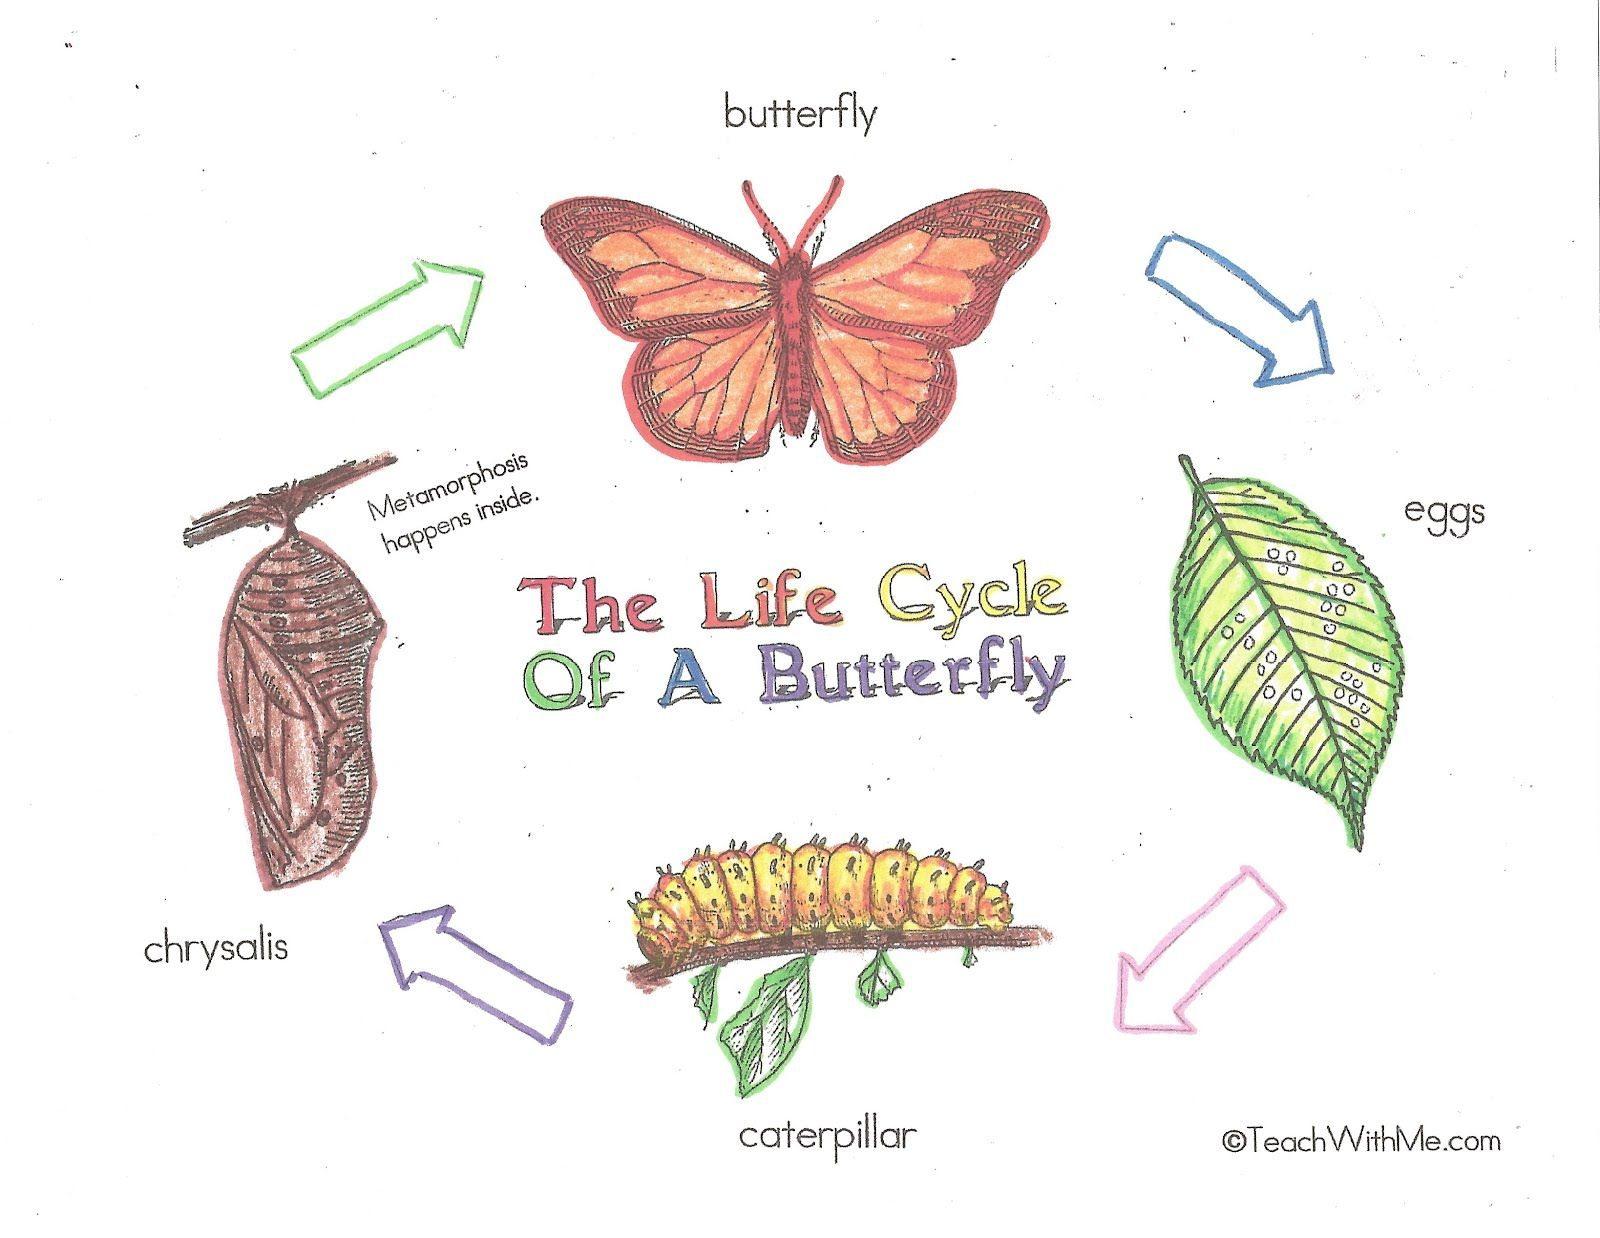 Worksheet Butterfly Life Cycle Printables 17 images about life cycles of animals on pinterest caterpillar and butterflies